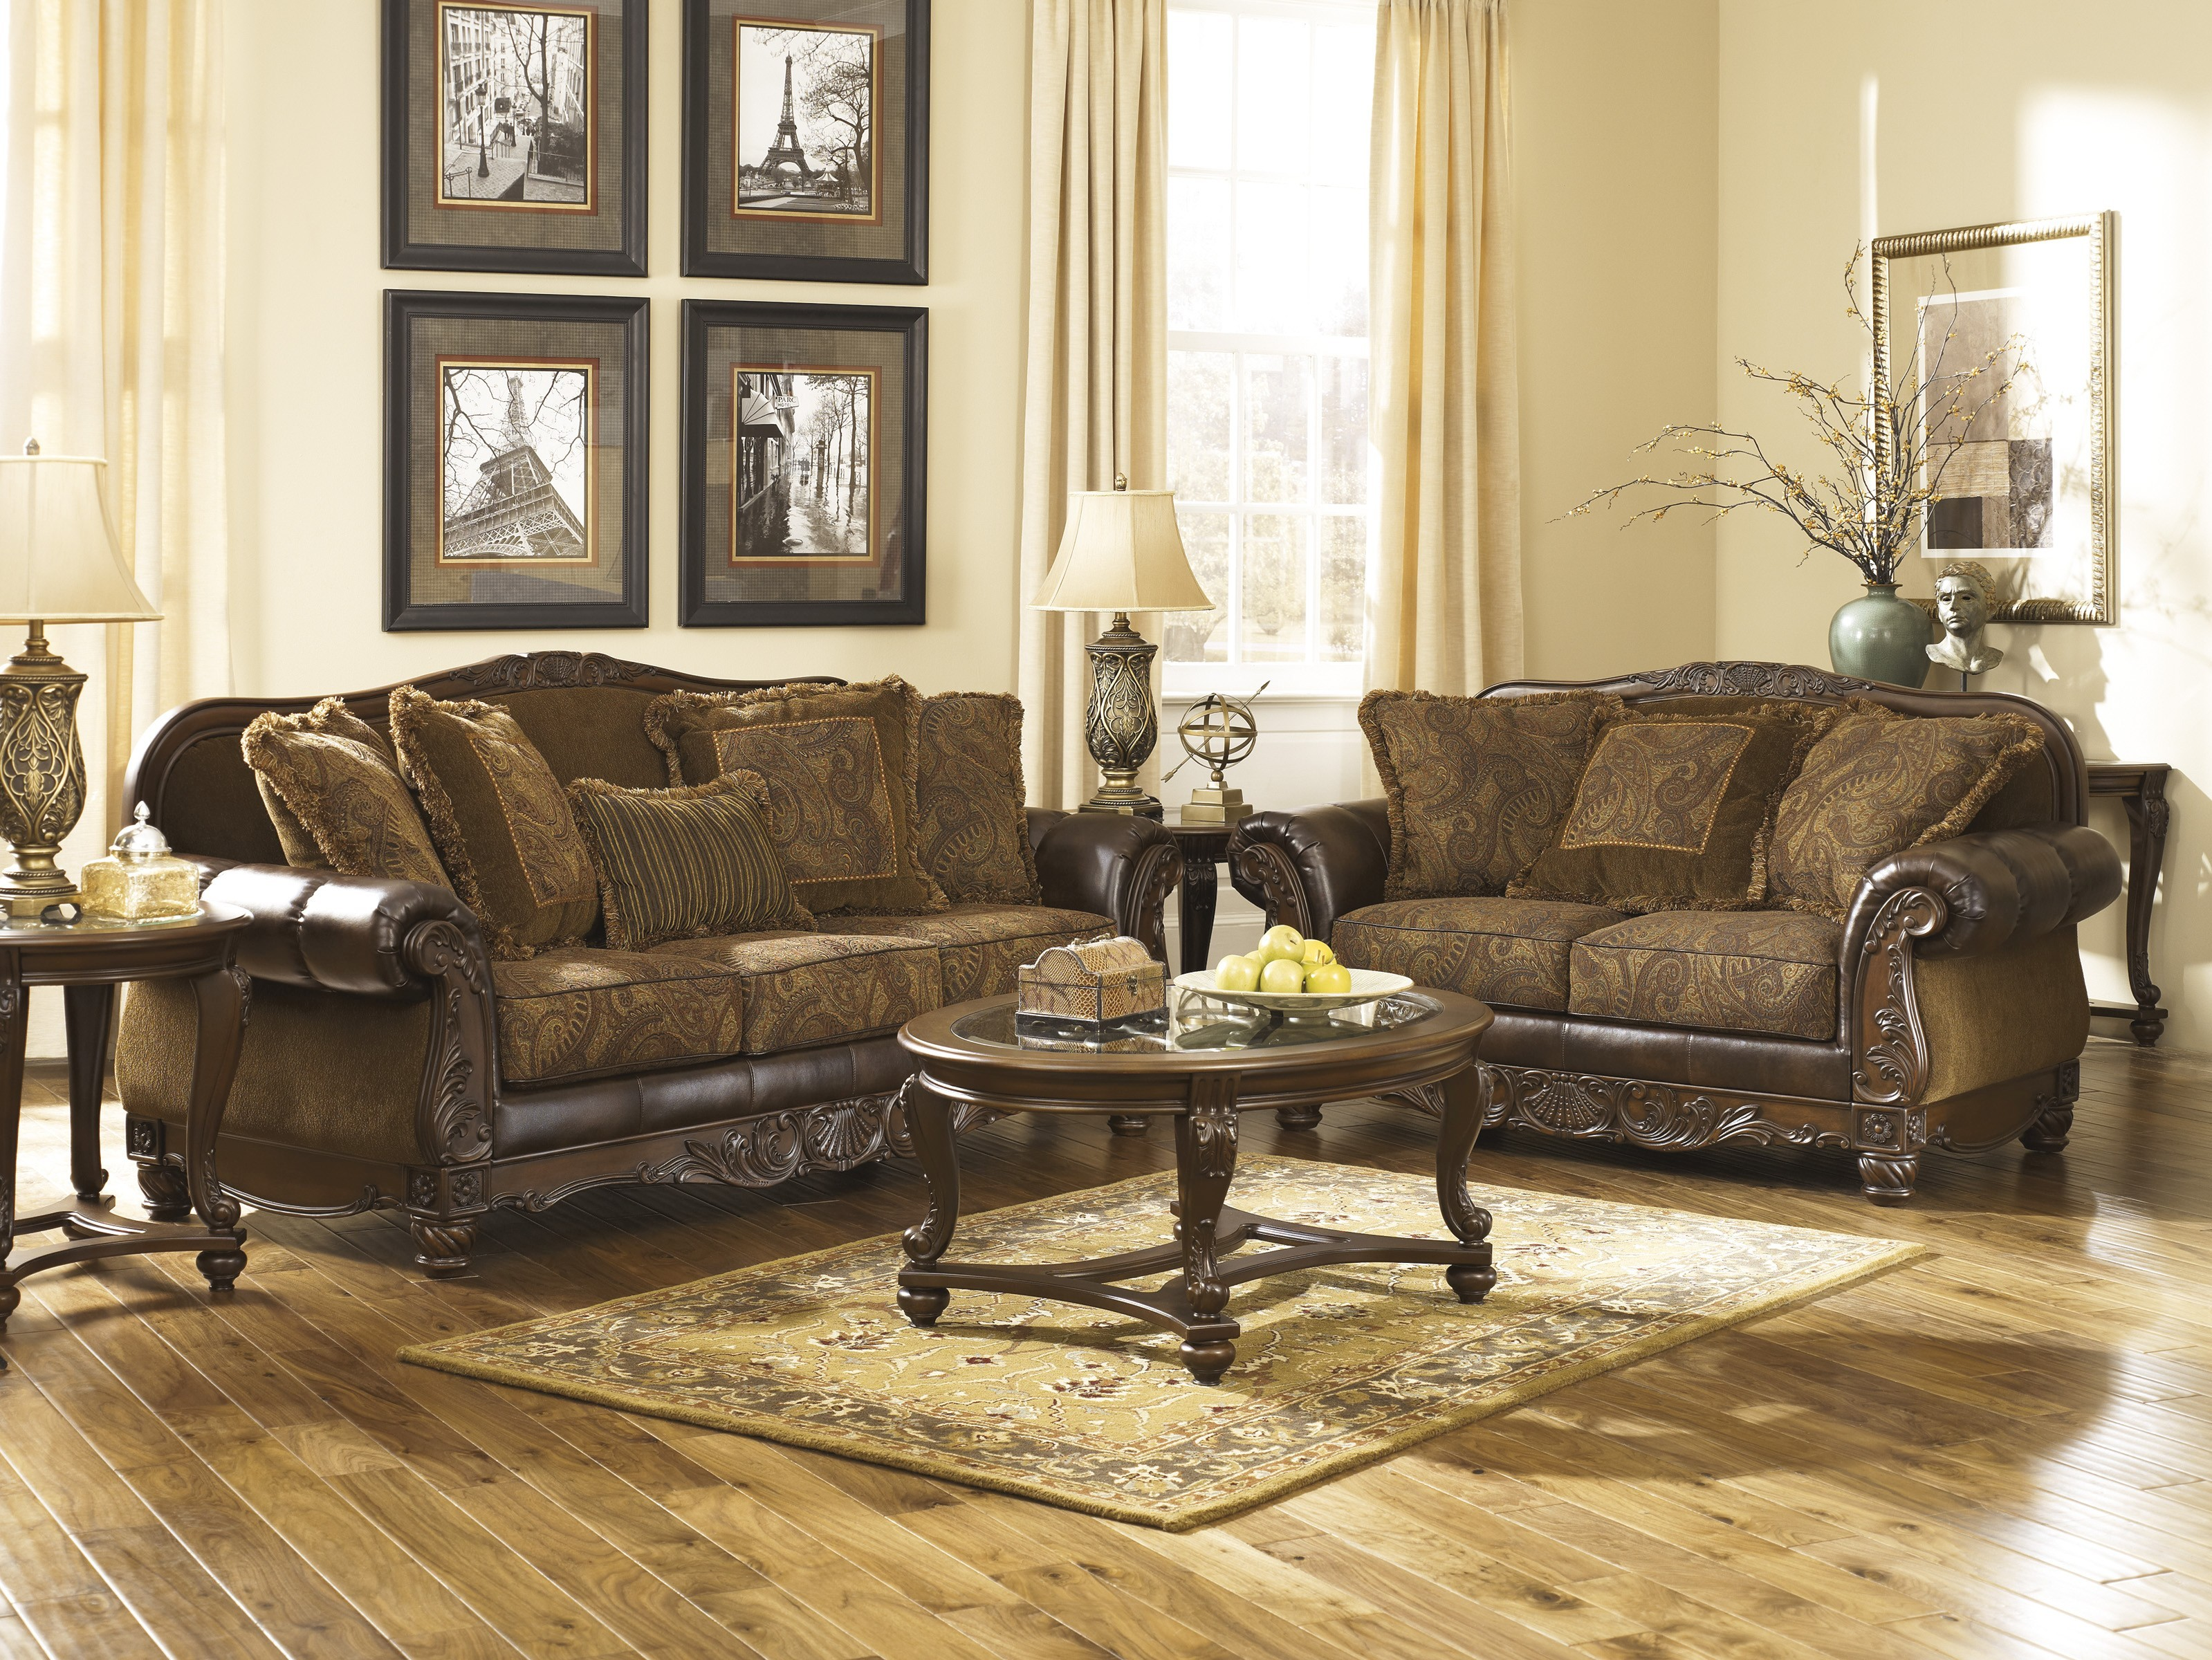 Antique Style sofa Fresh Best Antique Style sofa with Additional sofa Room Ideas with Decoration